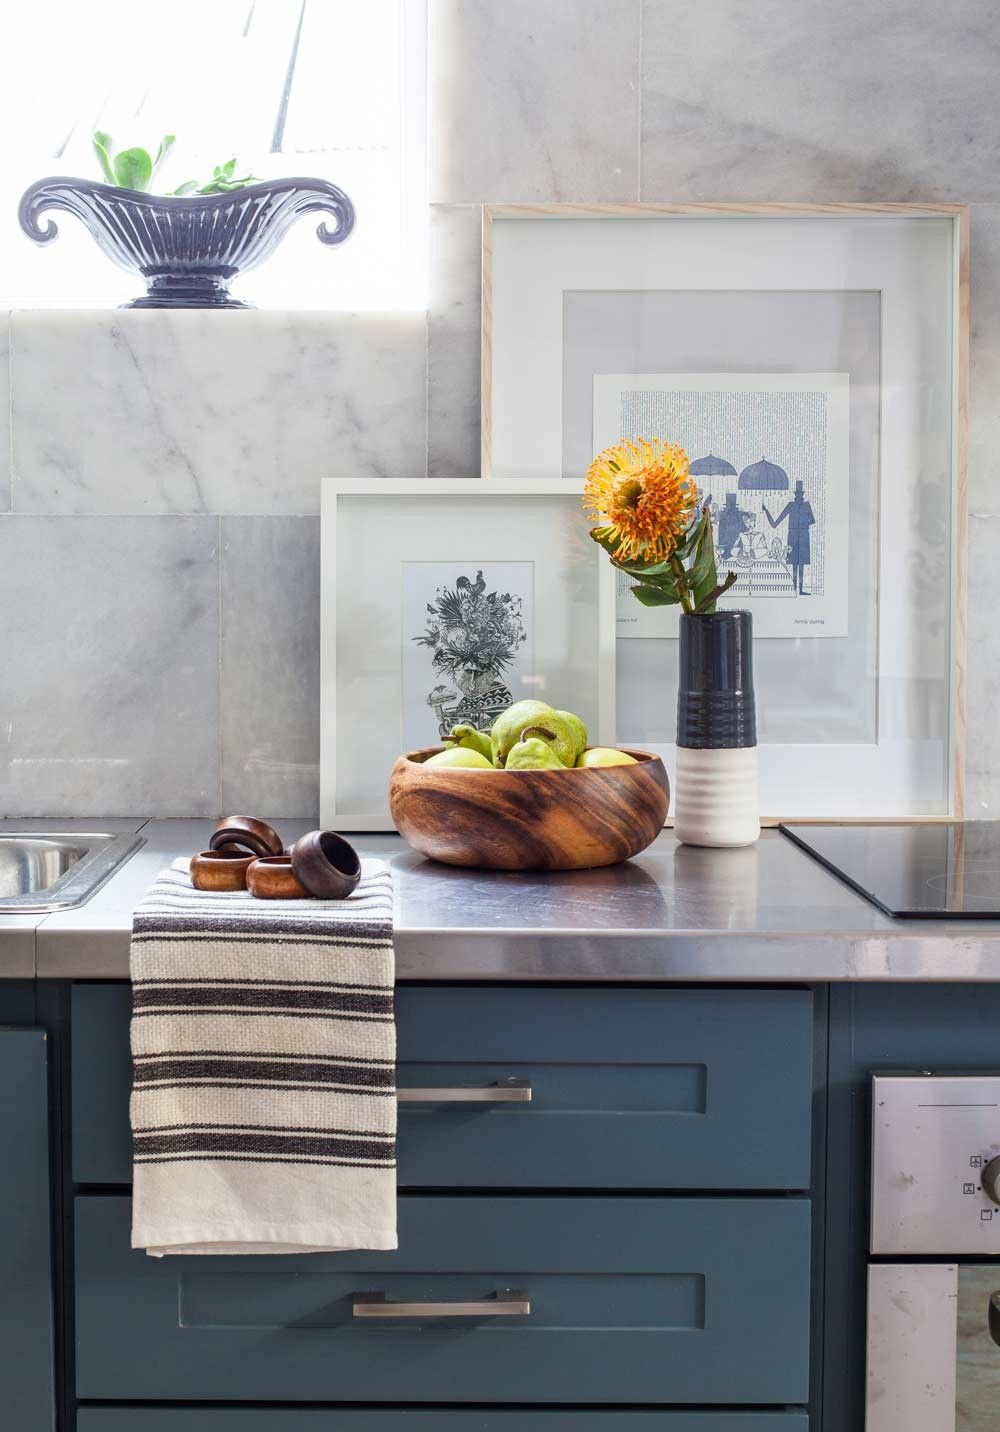 Doing It His Way In Cape Town, South Africa | Design*Sponge ...